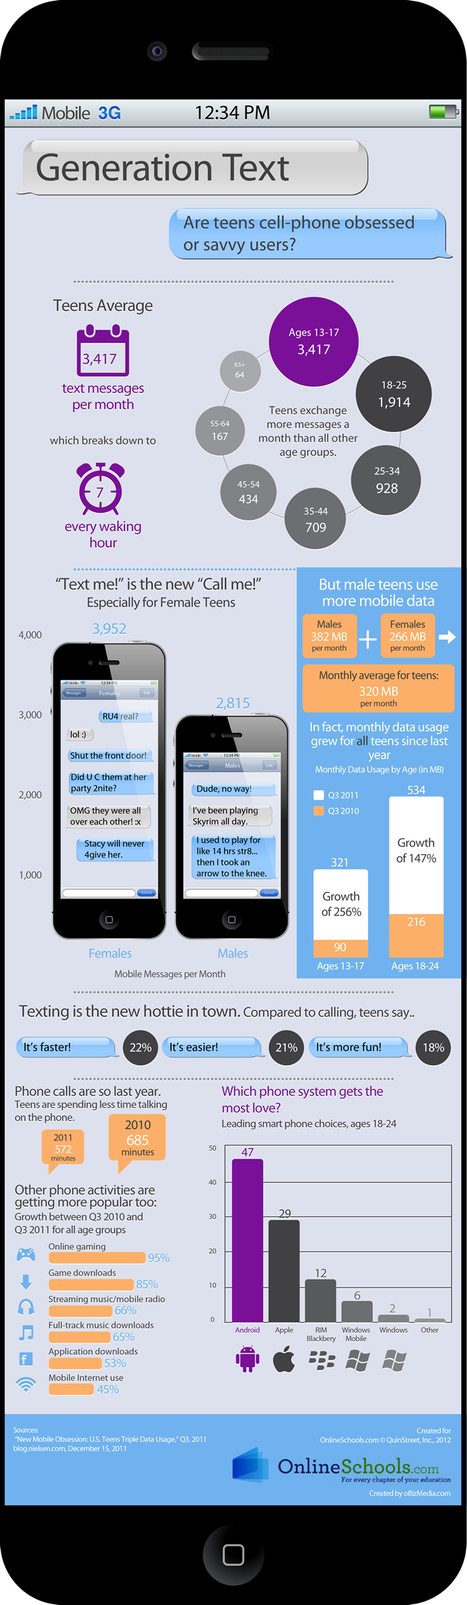 [Infographic] Generation Text: Teens and Cell Phones | Cells phones in Class? Oh, My! | Scoop.it